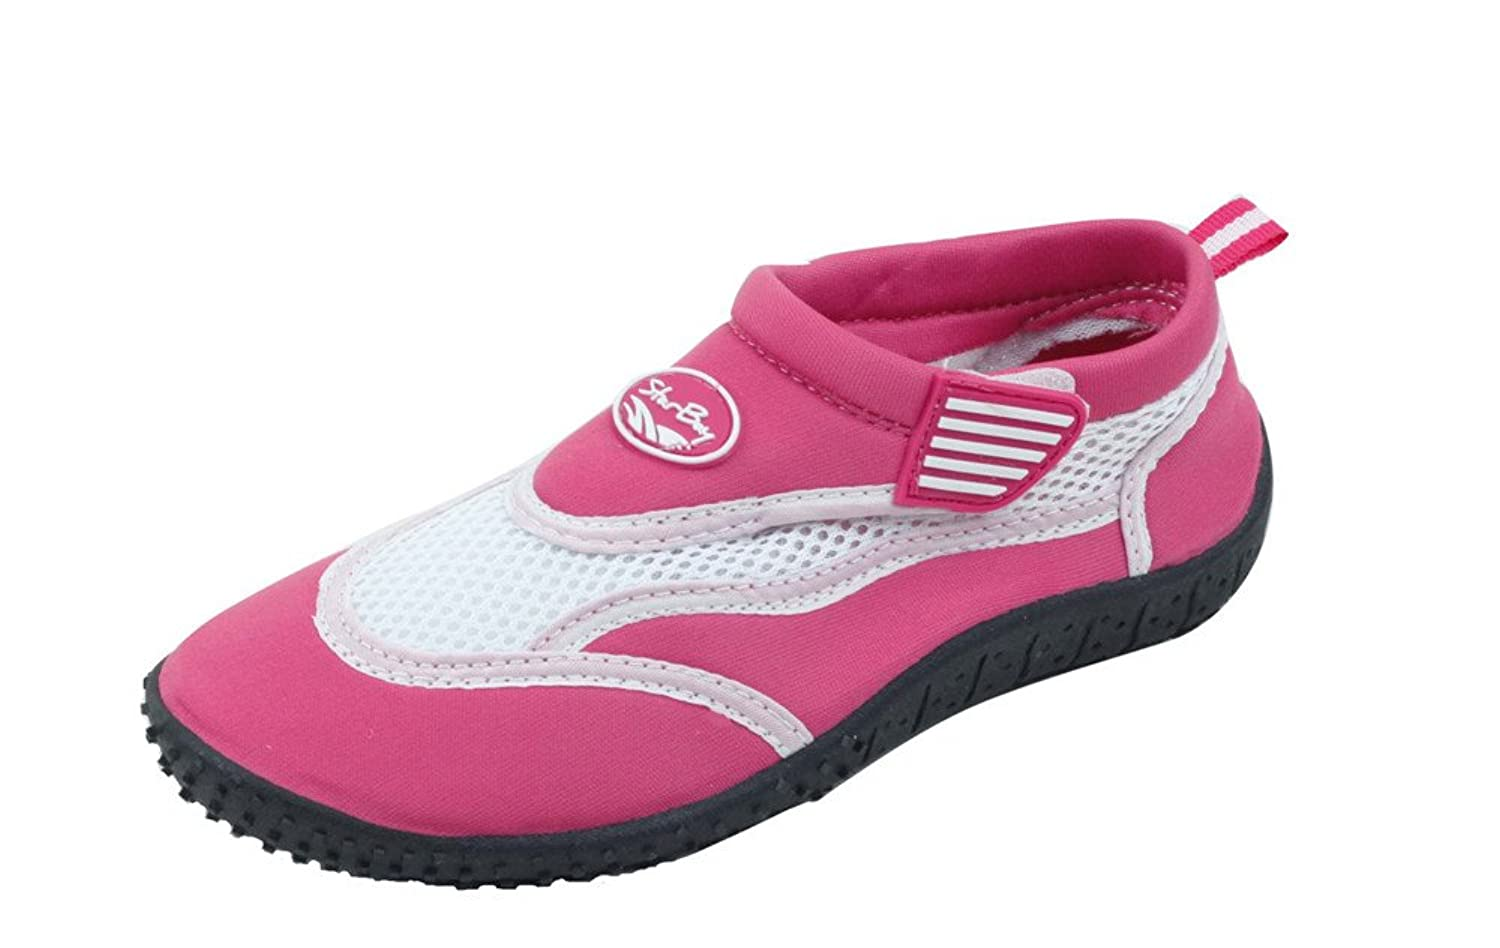 Starbay Childrens Slip-On Athletic Water Shoes